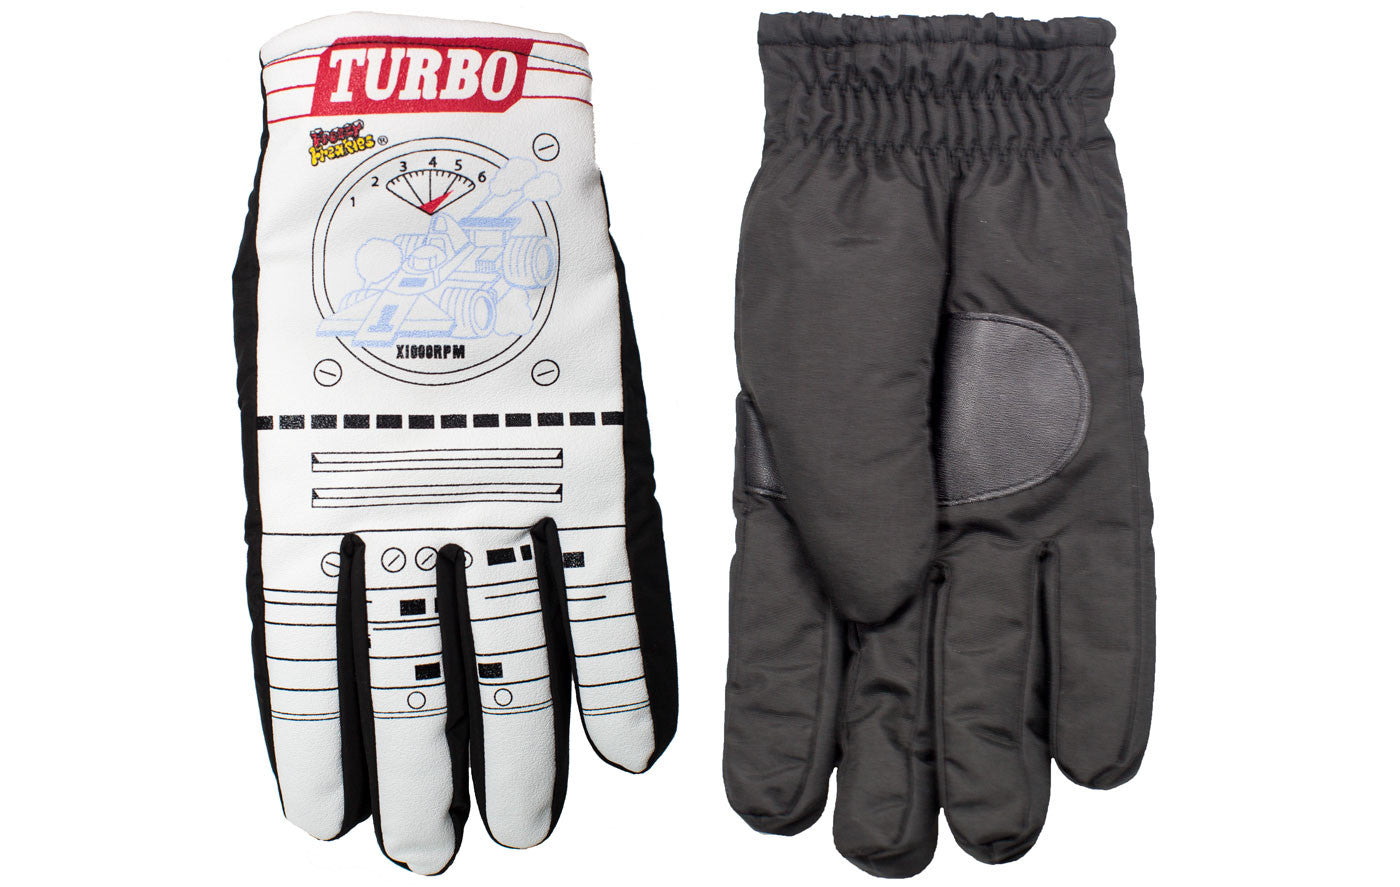 Turbo Freezy Freakies gloves for adults front and back